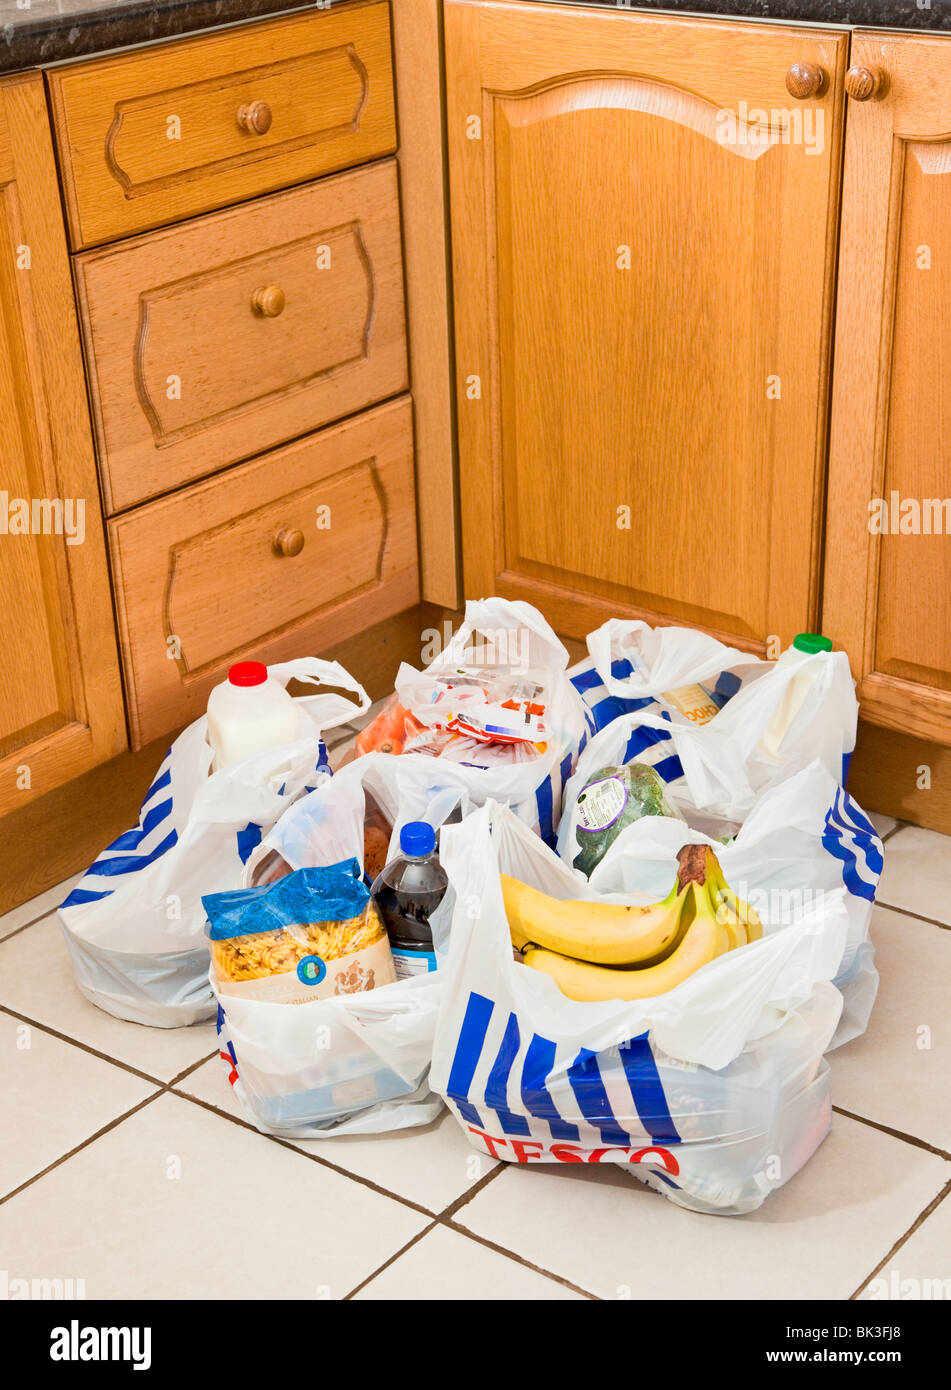 Grocery bags / carrier bags / shopping bags on a kitchen floor UK - Stock Image